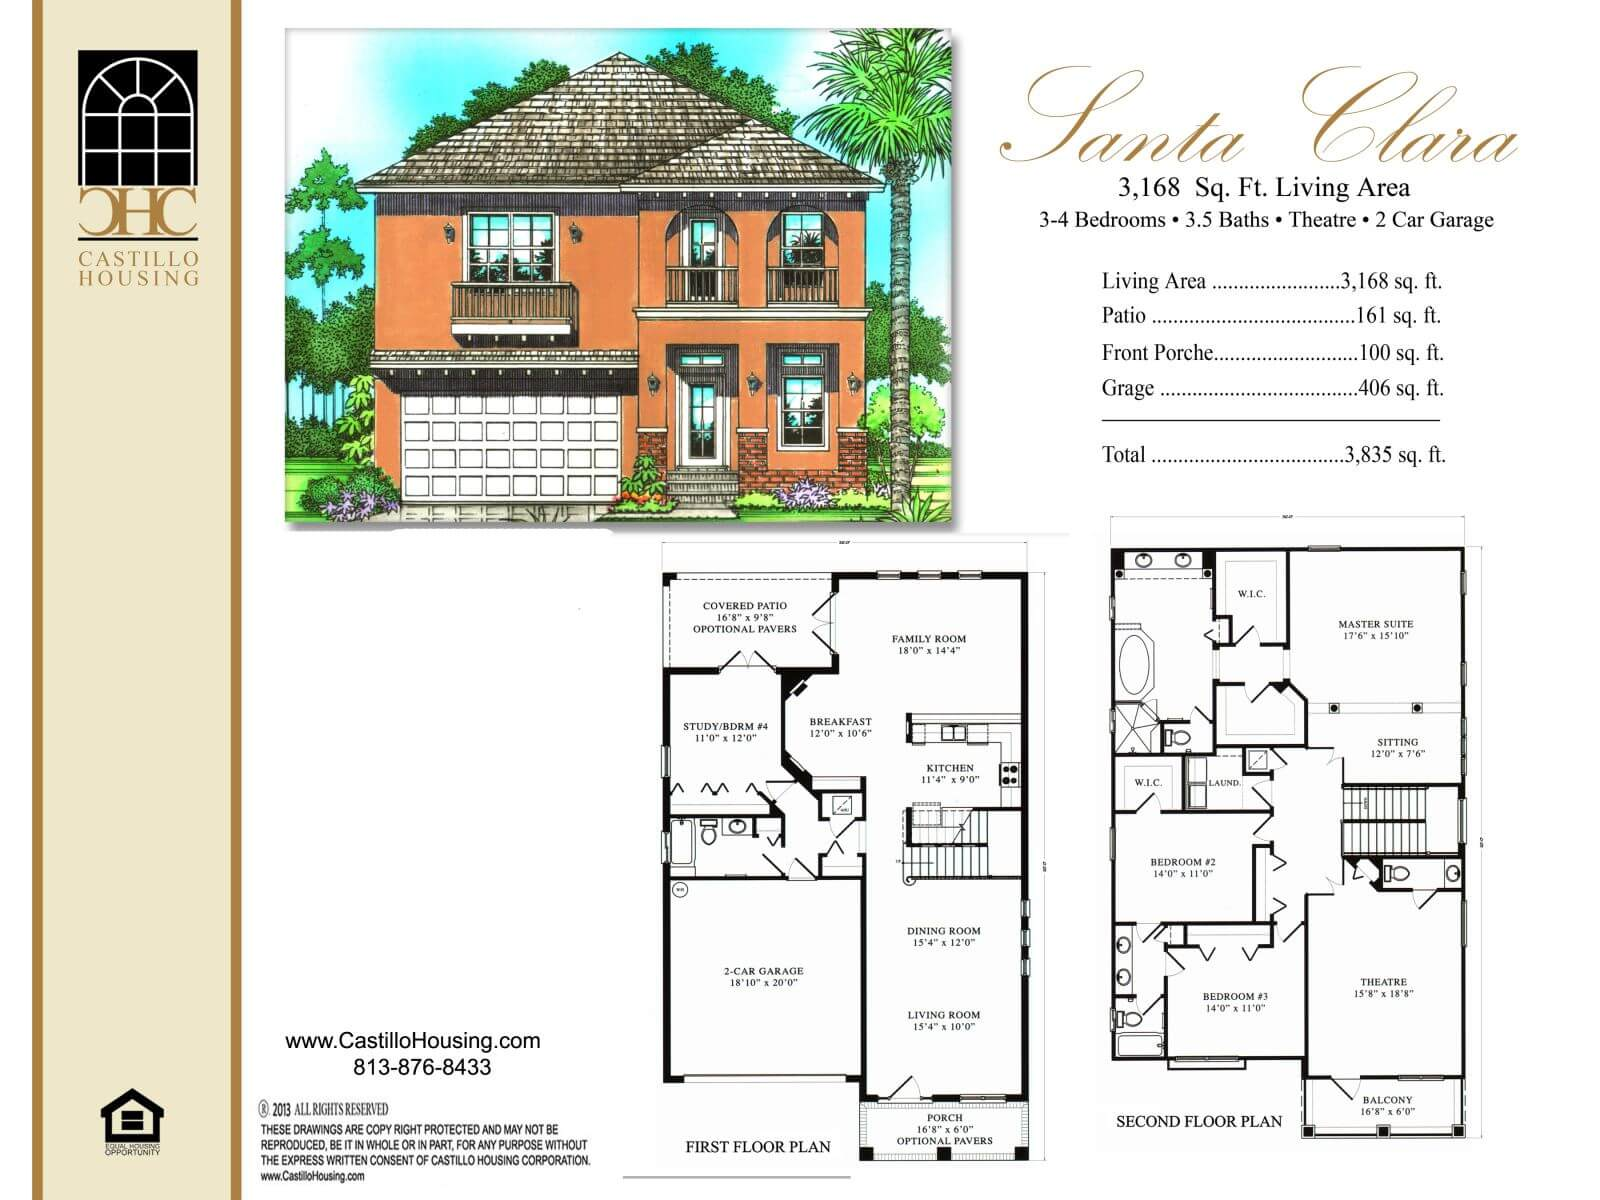 Floor Plans,3,001 SQ FT TO 3,500 SQ FT,1077